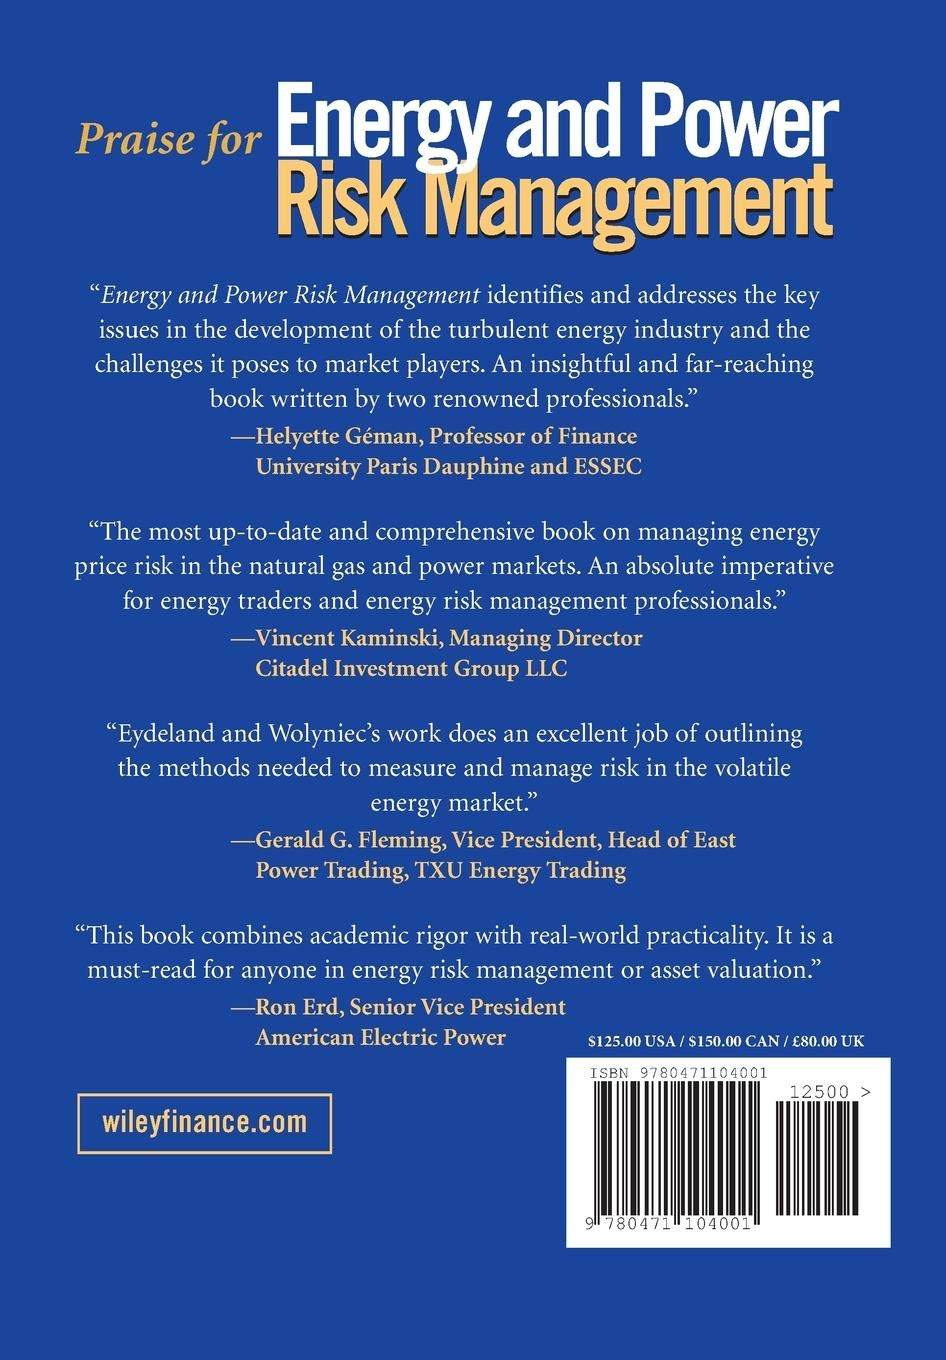 Energy and Power Risk Management: New Developments in